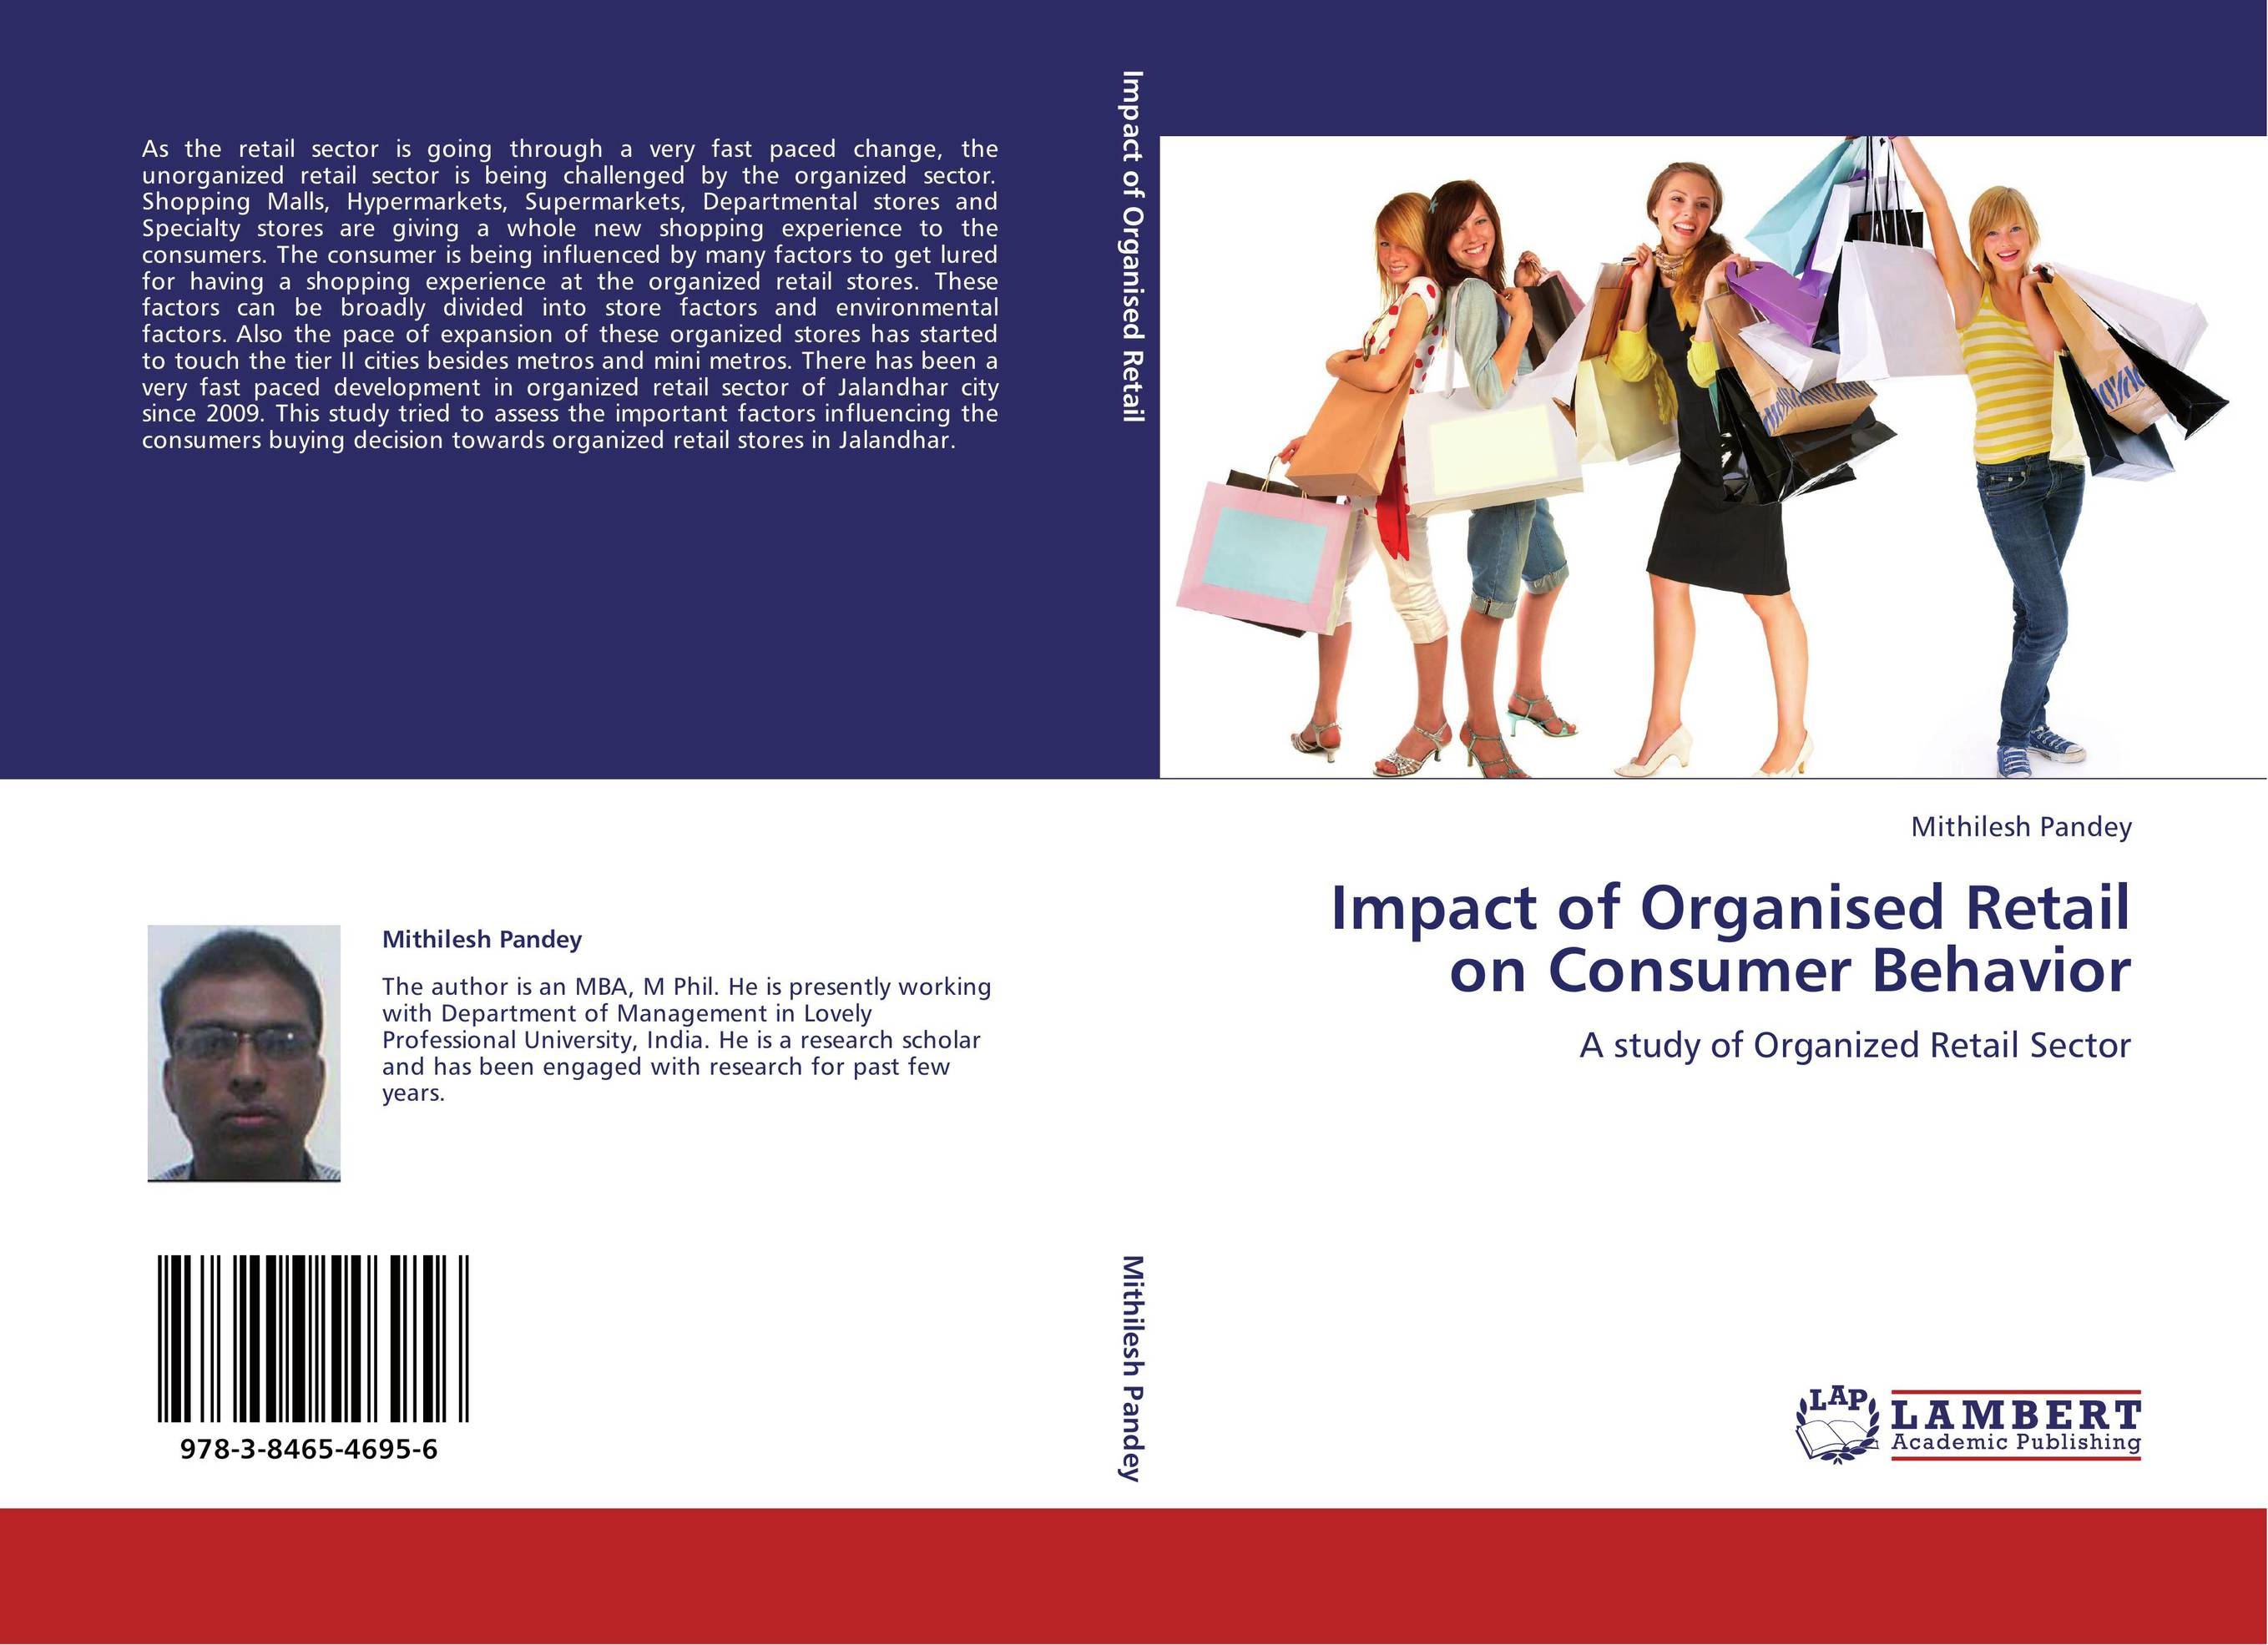 consumer behavior and experience about shopping malls The shopping mall as consumer habitat  based on patterns of behavior because consumer behavior in malls is  consumer behavior in the shopping.